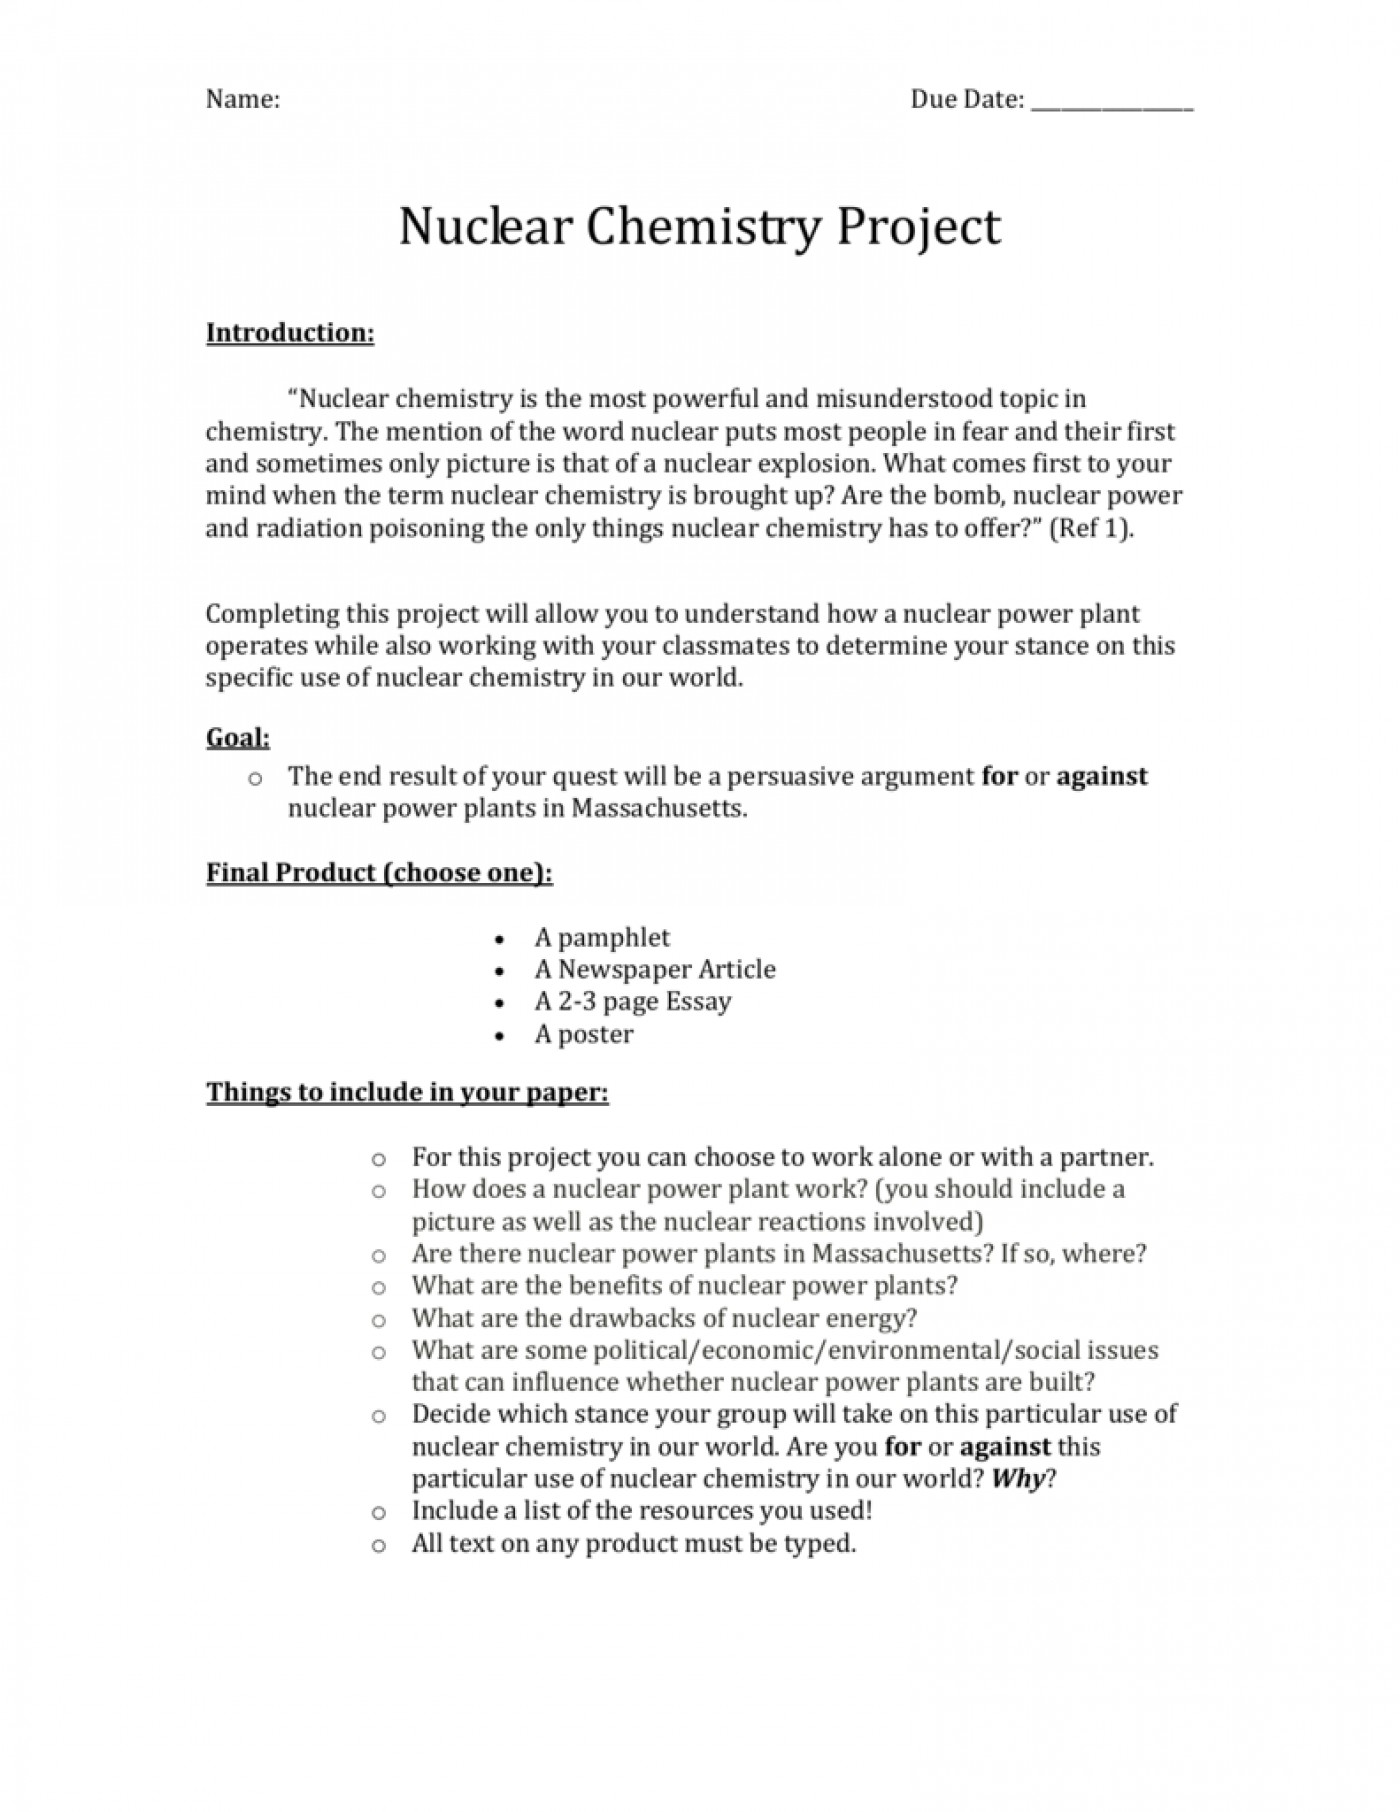 002 Nuclear Chemistry Essay 007069203 1 Awesome Advantages And Disadvantages 1400